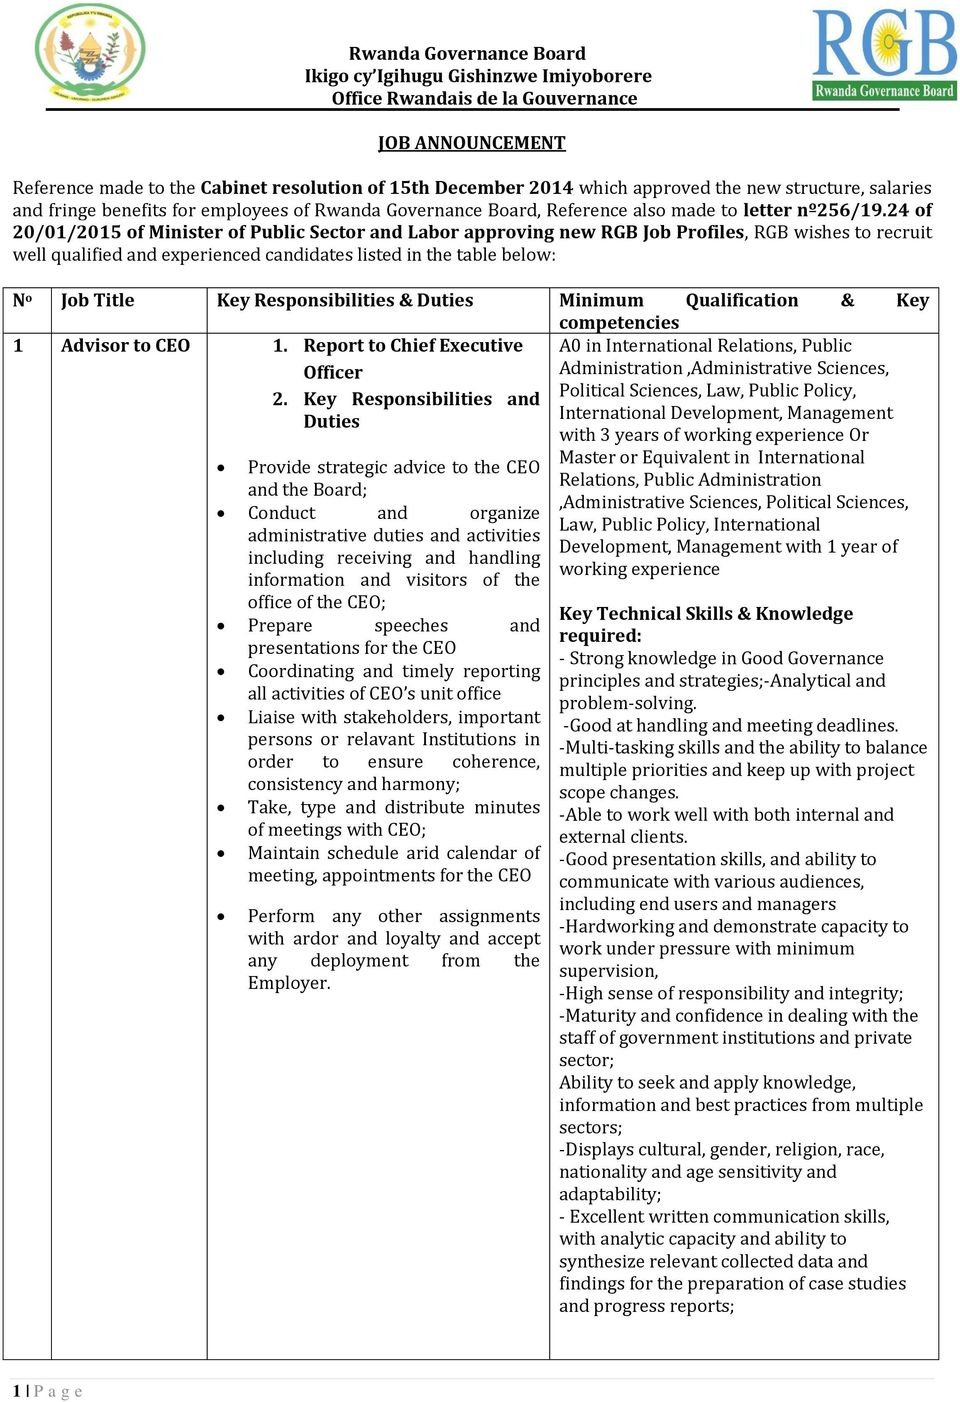 24 of 20/01/2015 of Minister of Public Sector and Labor approving new RGB Job Profiles, RGB wishes to recruit well qualified and experienced candidates listed in the table below: N o Job Title Key